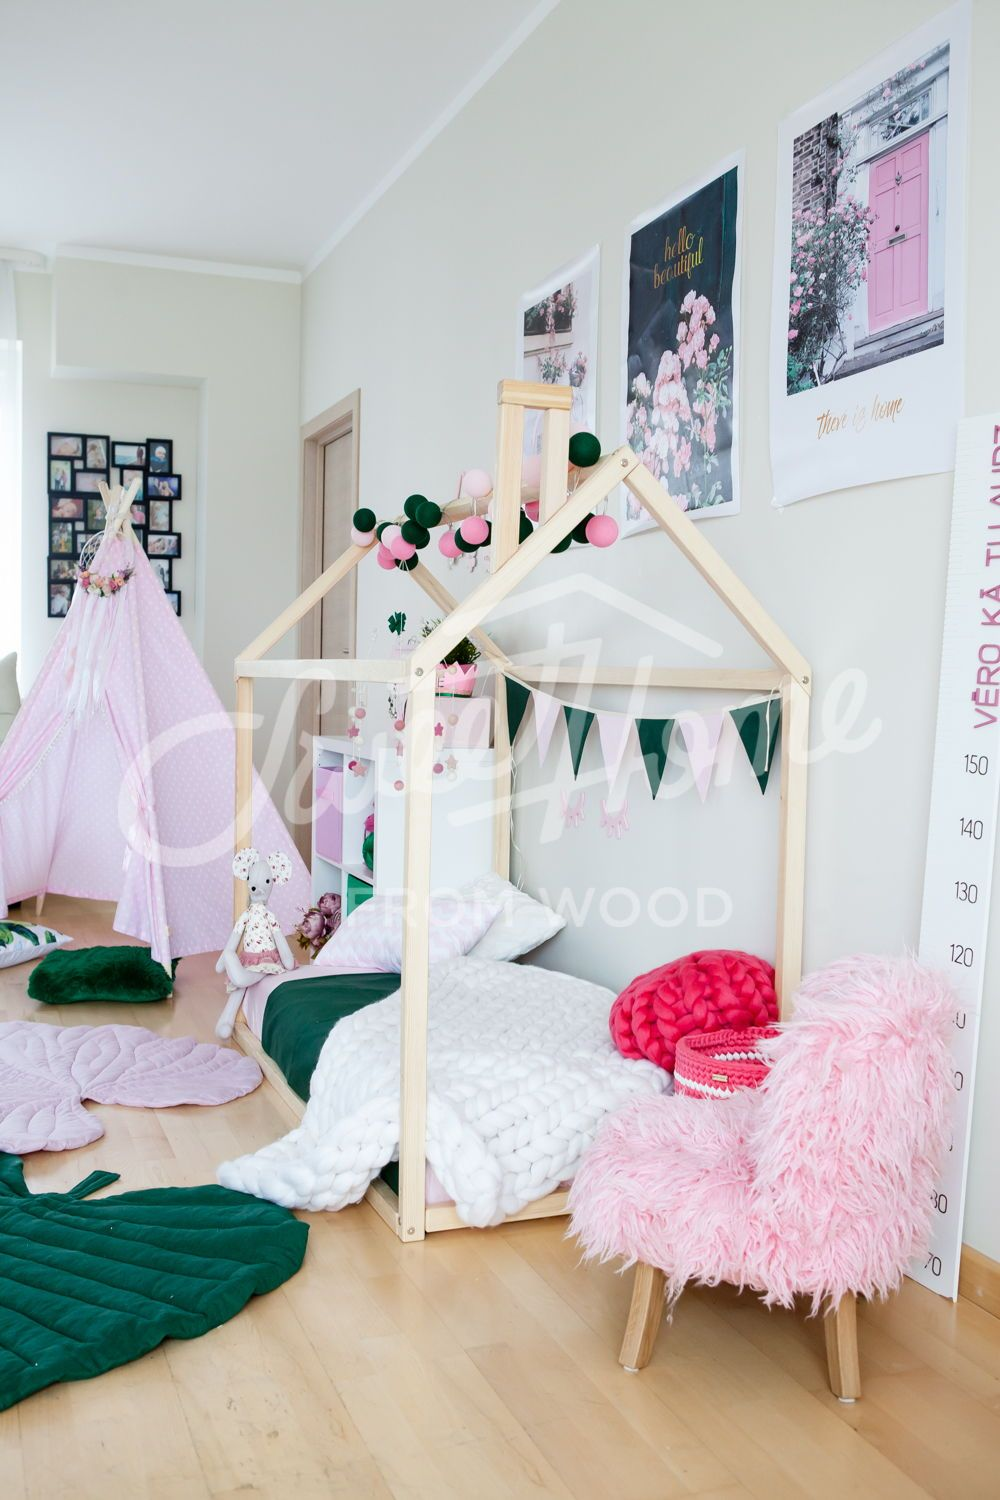 House bed, toddler bed house, Montessori toys, Montessori